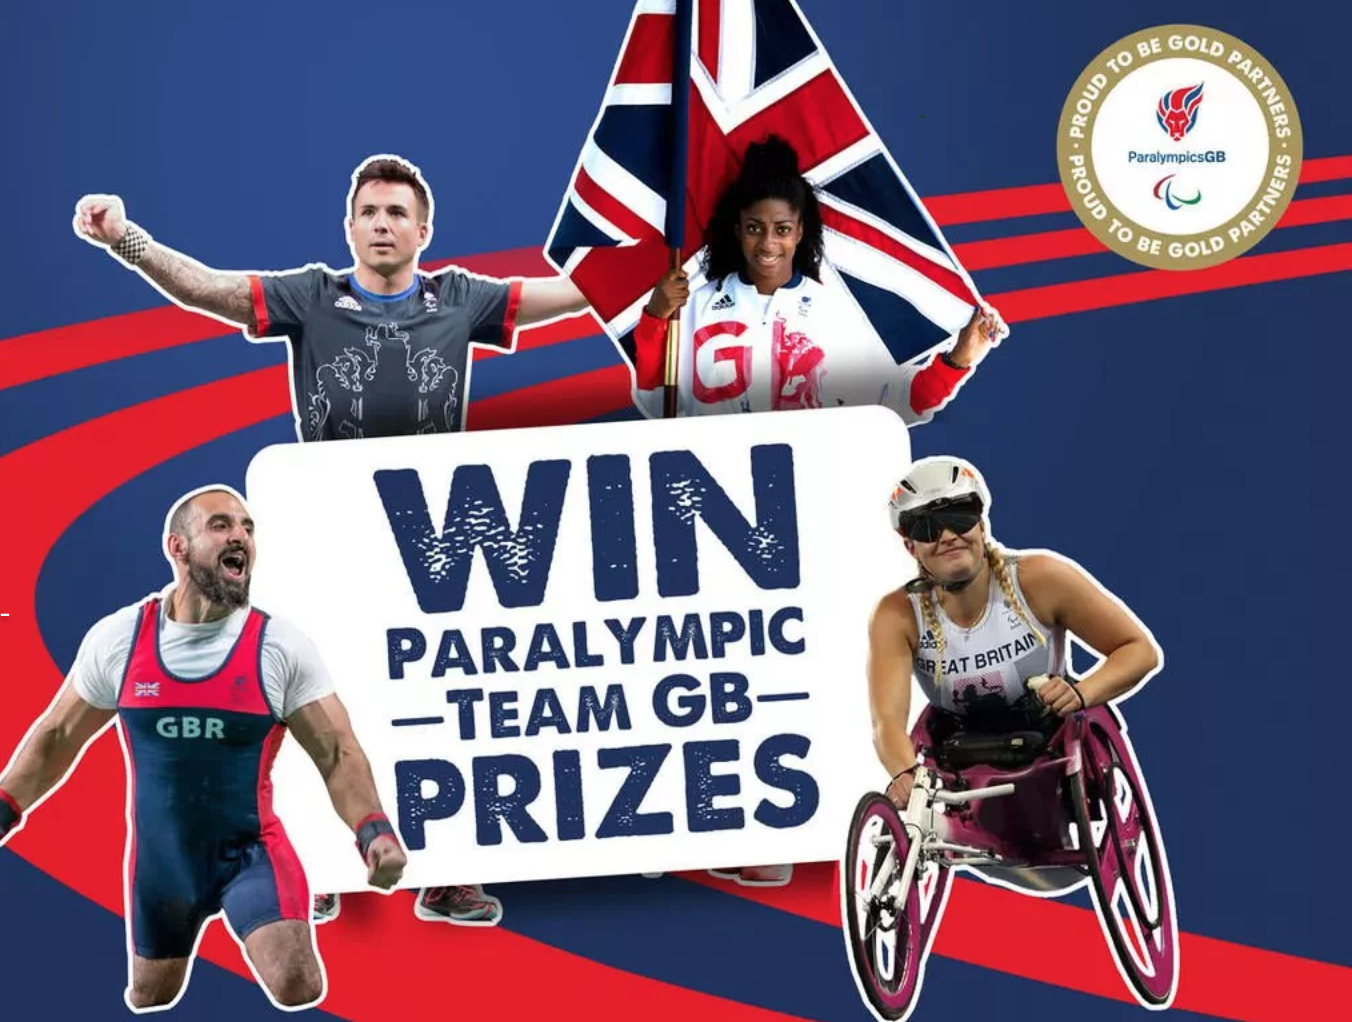 Nestle Paralympic